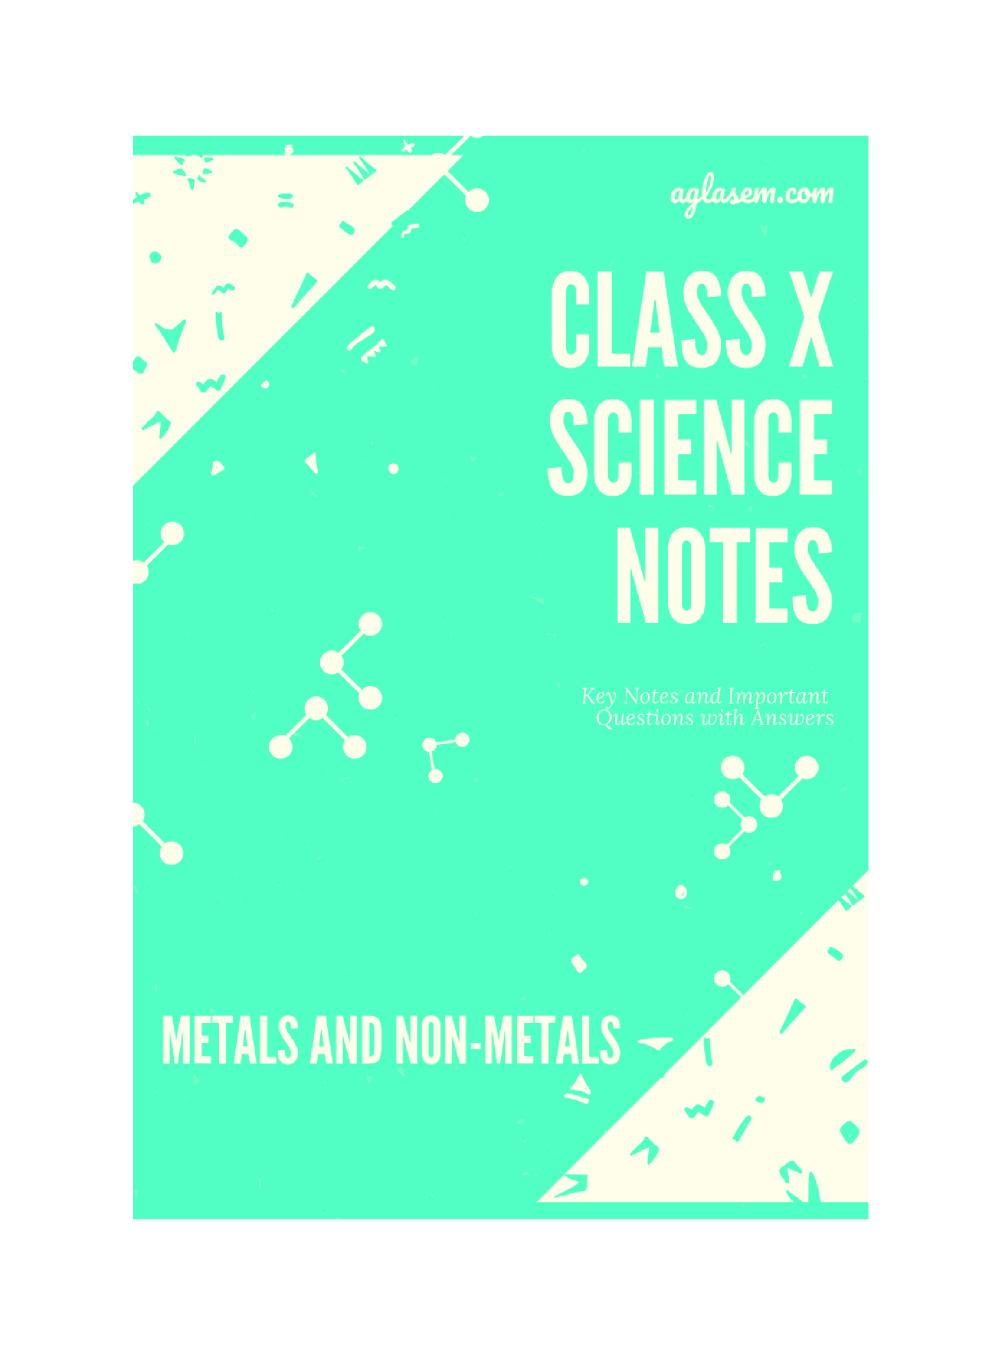 Class 10 Science Metals and Non Metals Notes, Important Questions & Practice Paper